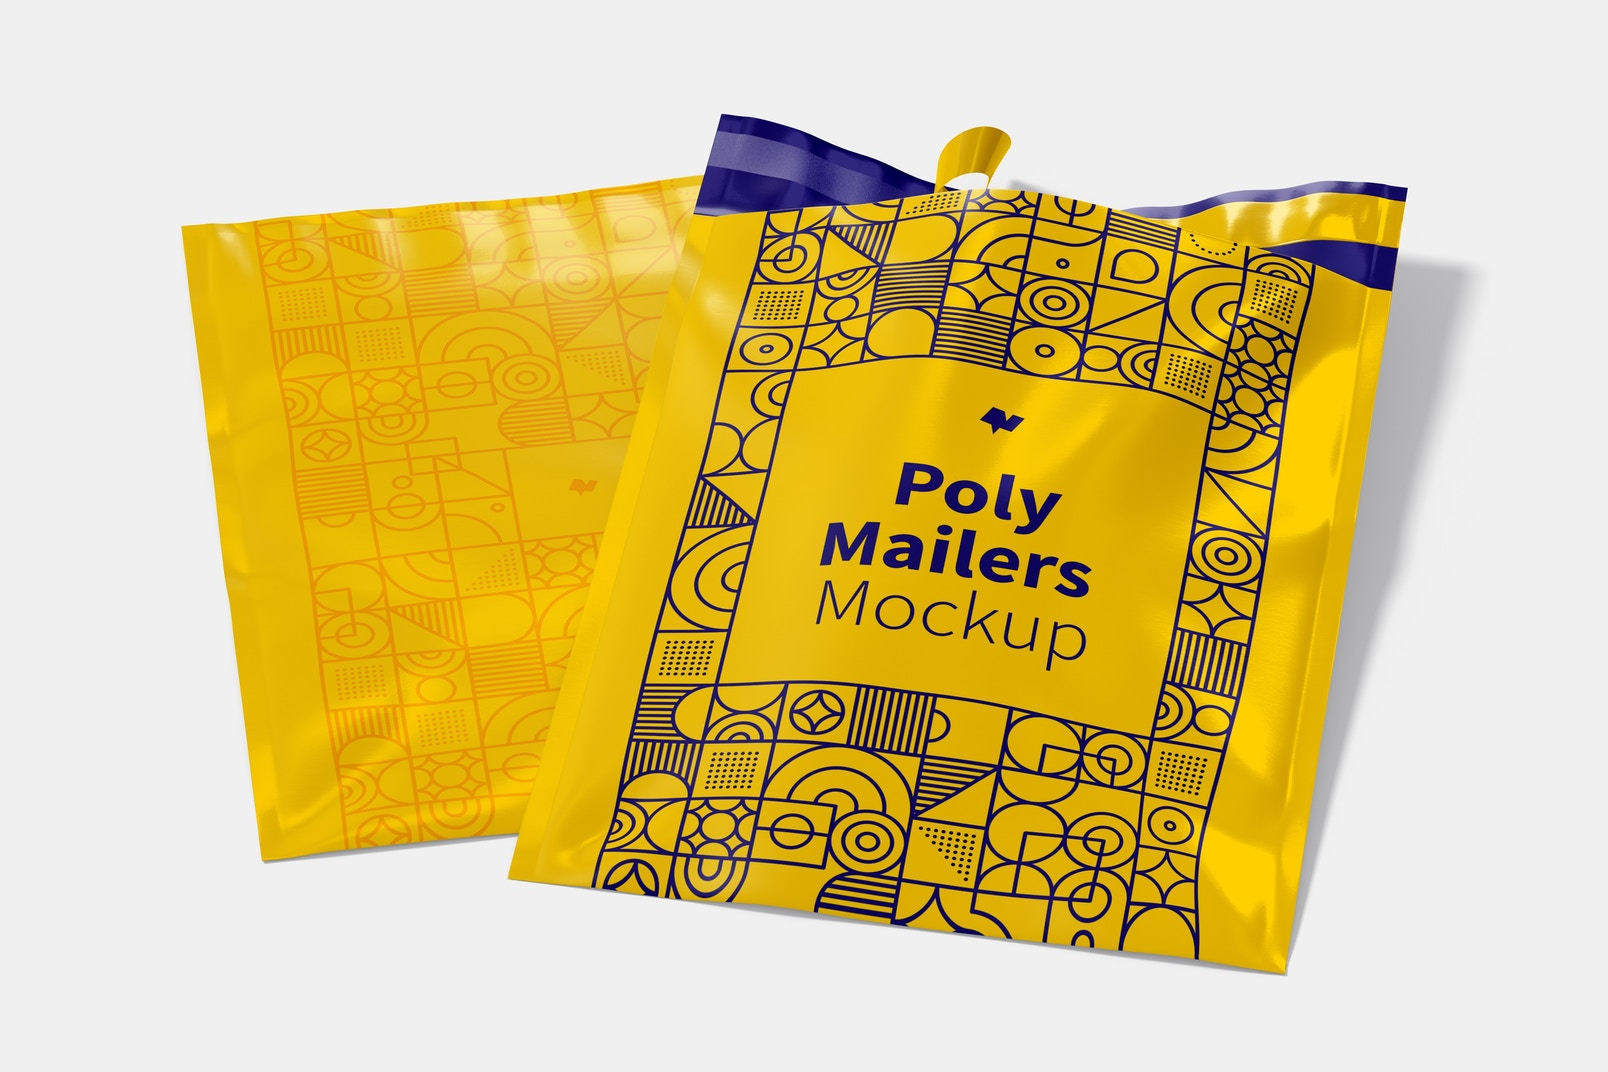 Poly Mailers Mockup, Opened and Closed